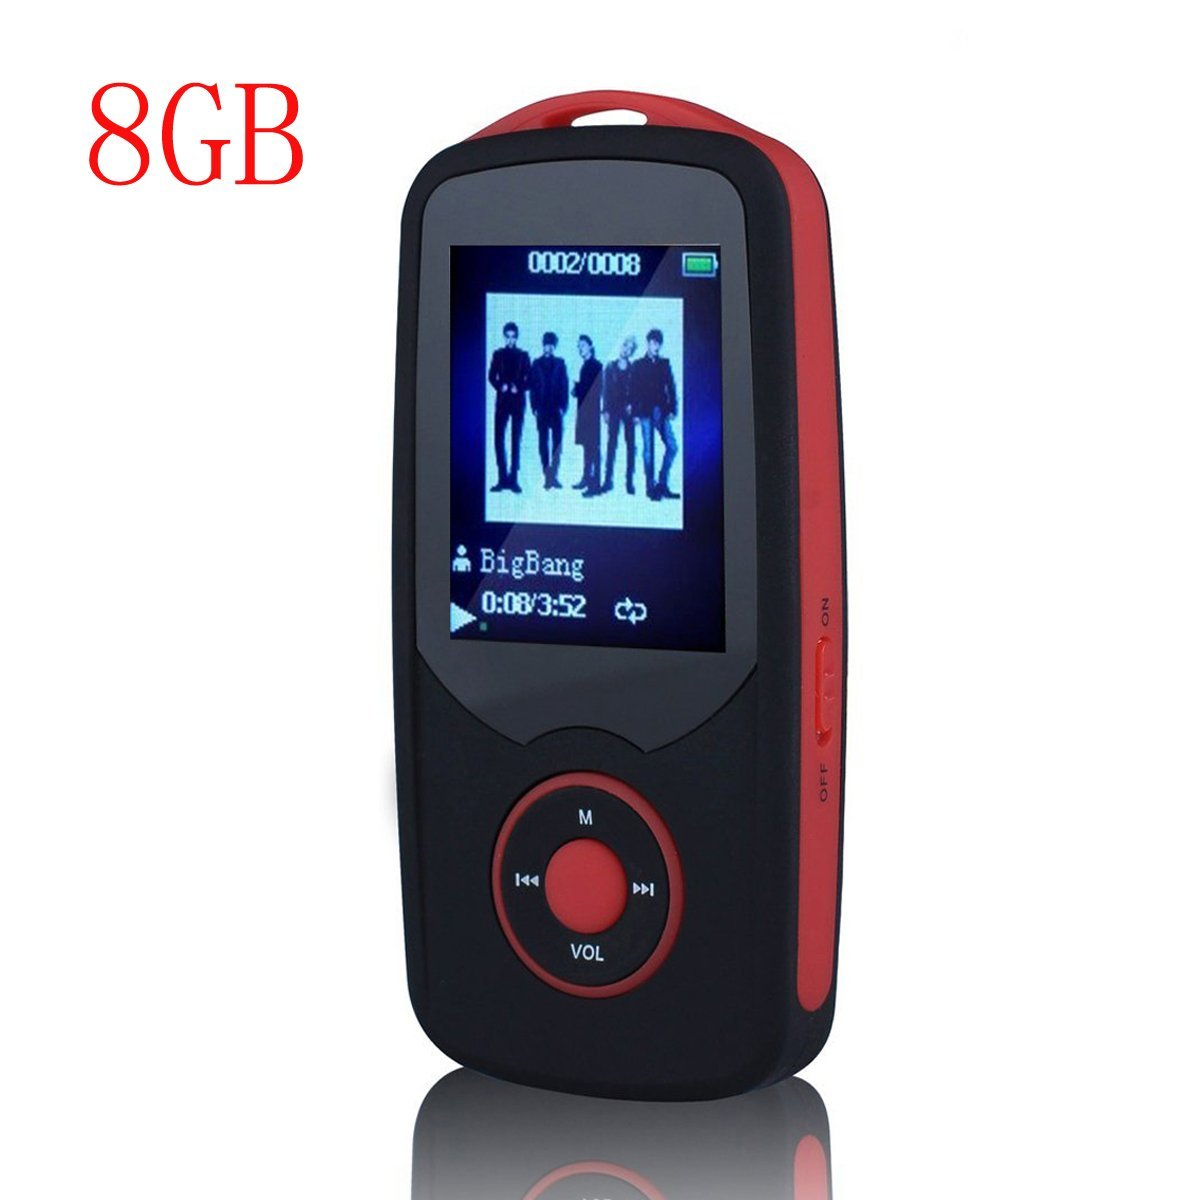 HONGYU R06 Portable Hi_Fi 8GB Bluetooth MP3 Music Player with FM Radio and Voice Recorder 50 Hours Lossless Playing & Supports u